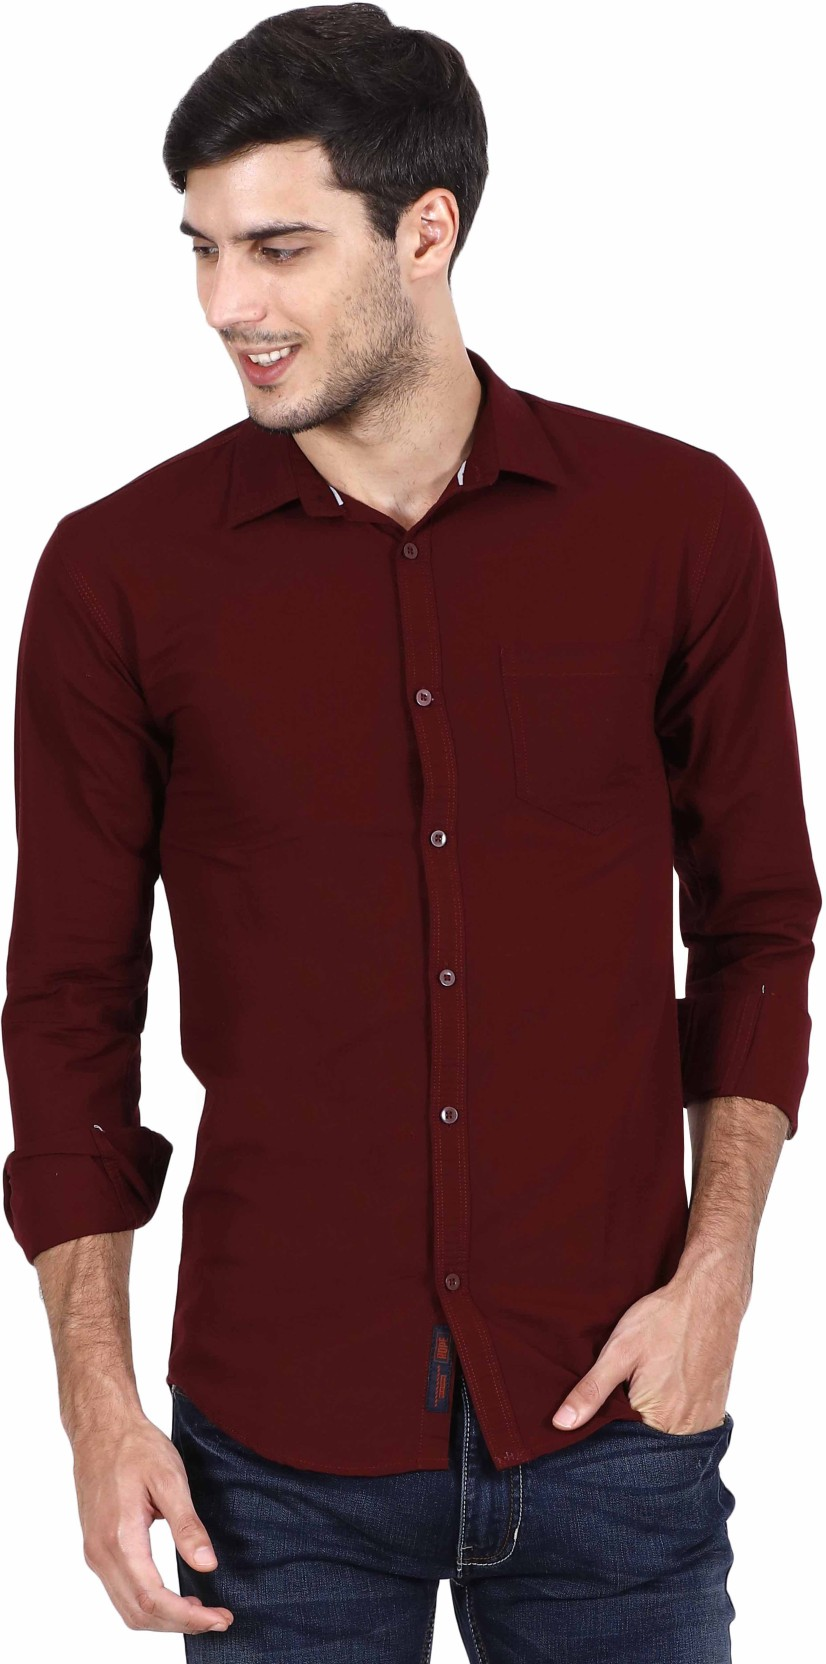 Rope Mens Solid Casual Maroon Shirt Buy Ares Nokha Sneakers Women 36 On Offer